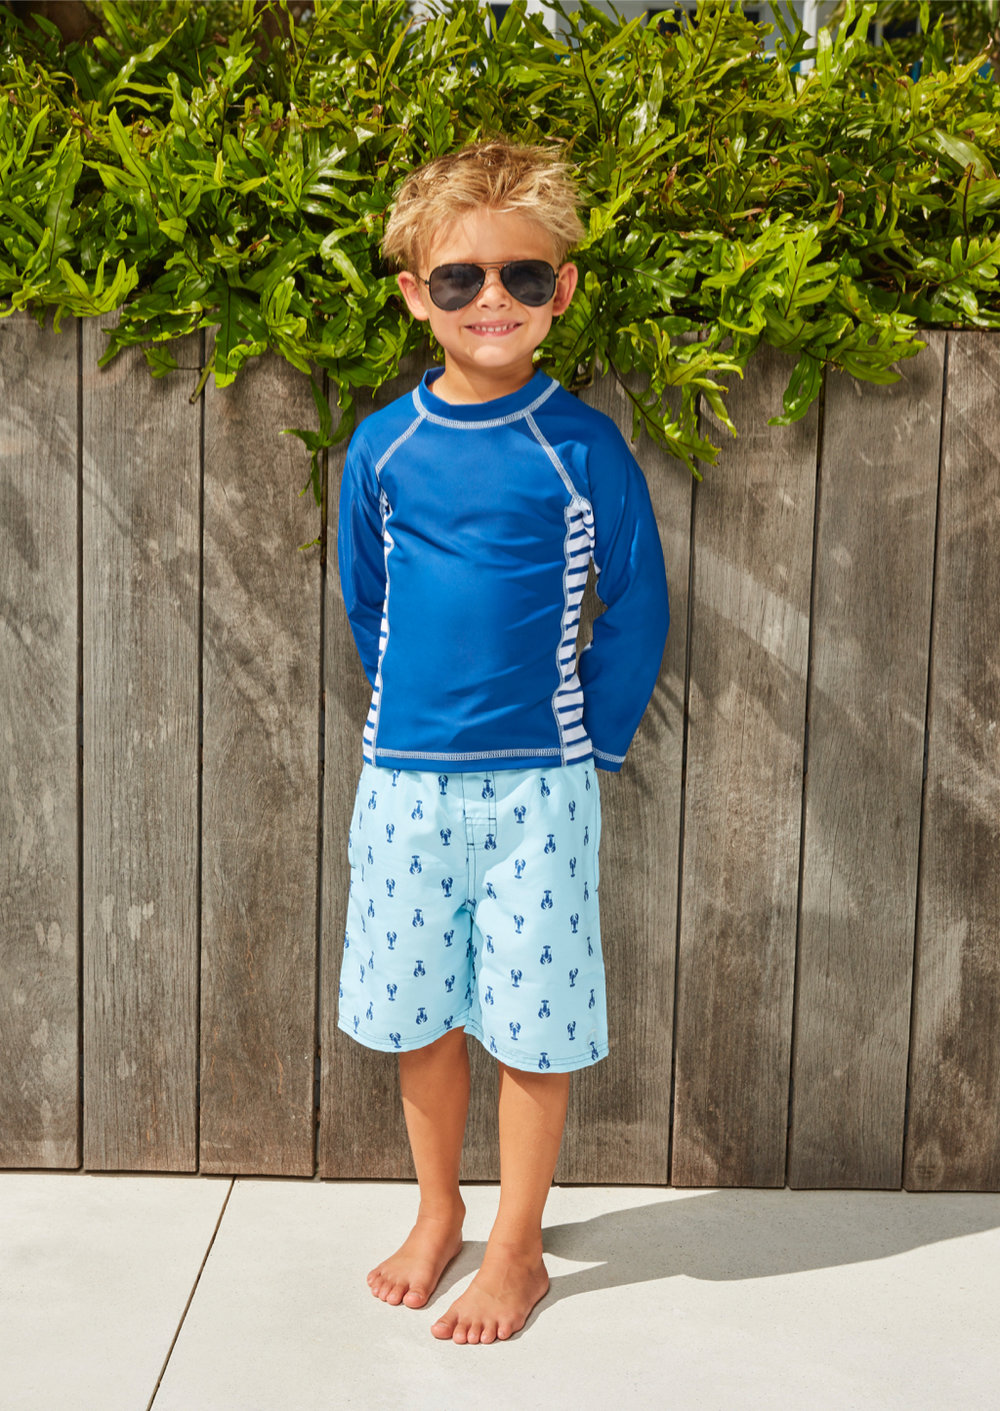 Little-Boys-Rashguard-Sets_Cabana-Life_Blue-Lobsters-Rashguard-Set-1.jpg